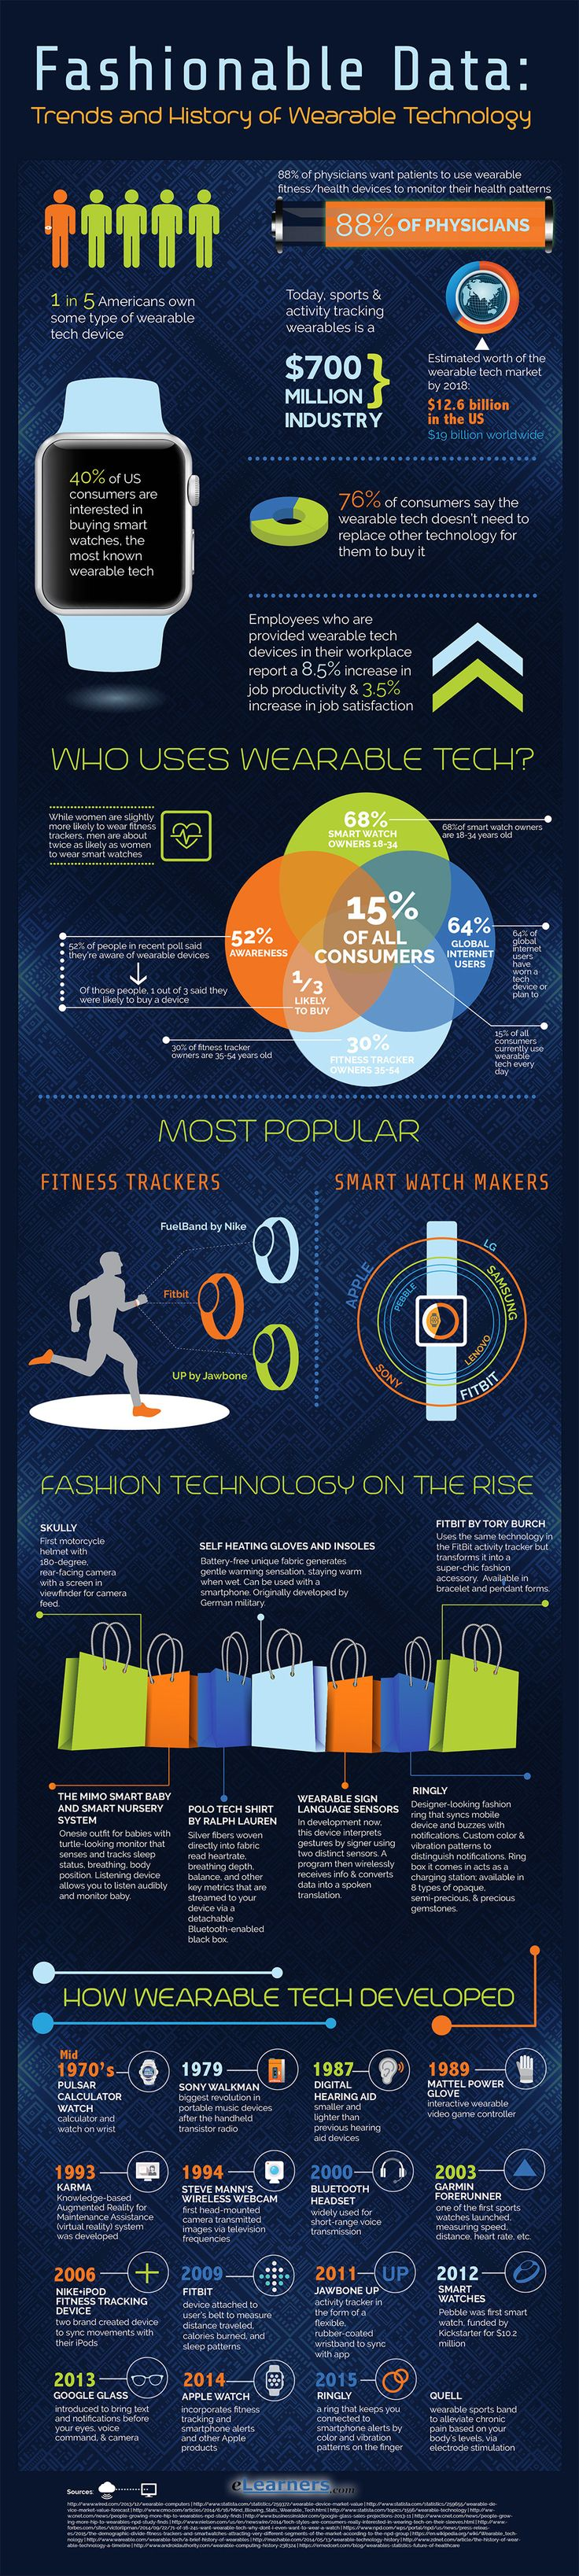 http://www.elearners.com/online-college-degrees/technology/history-of-wearable-technology/